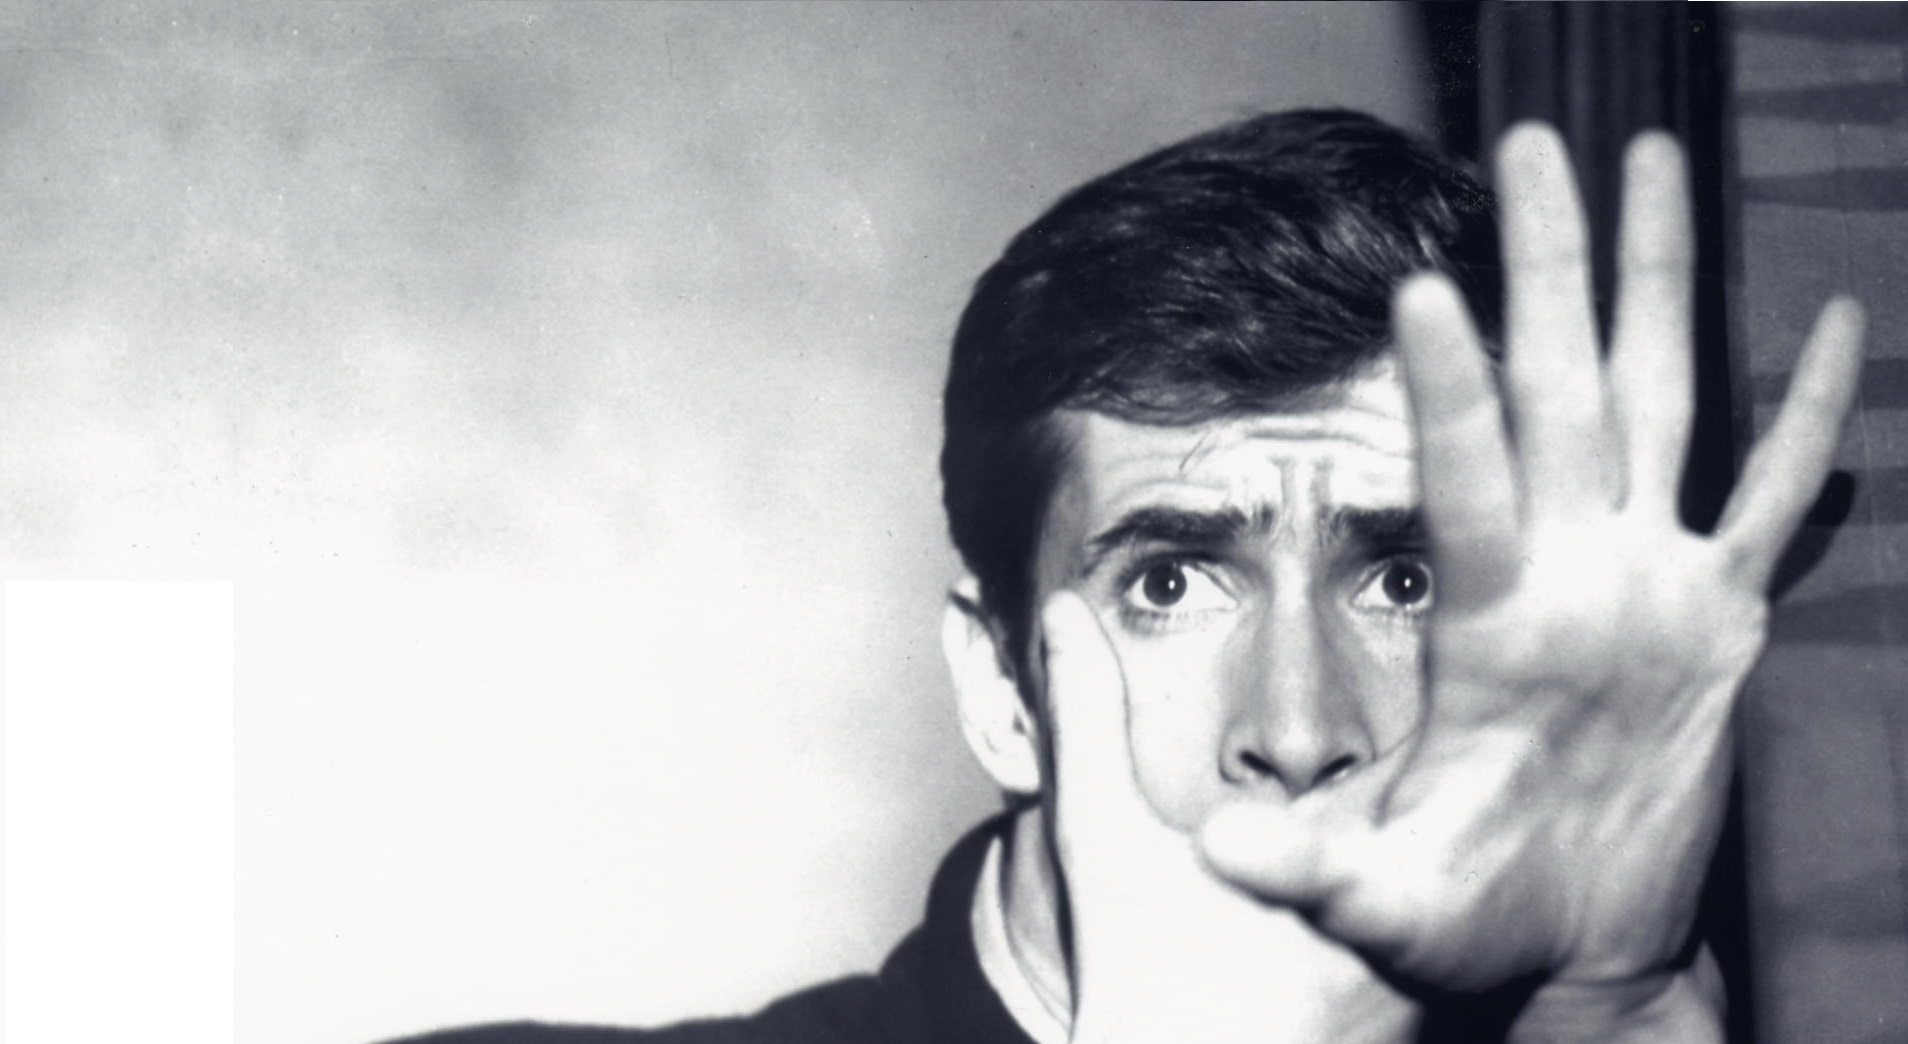 Psyco - Anthony Perkins